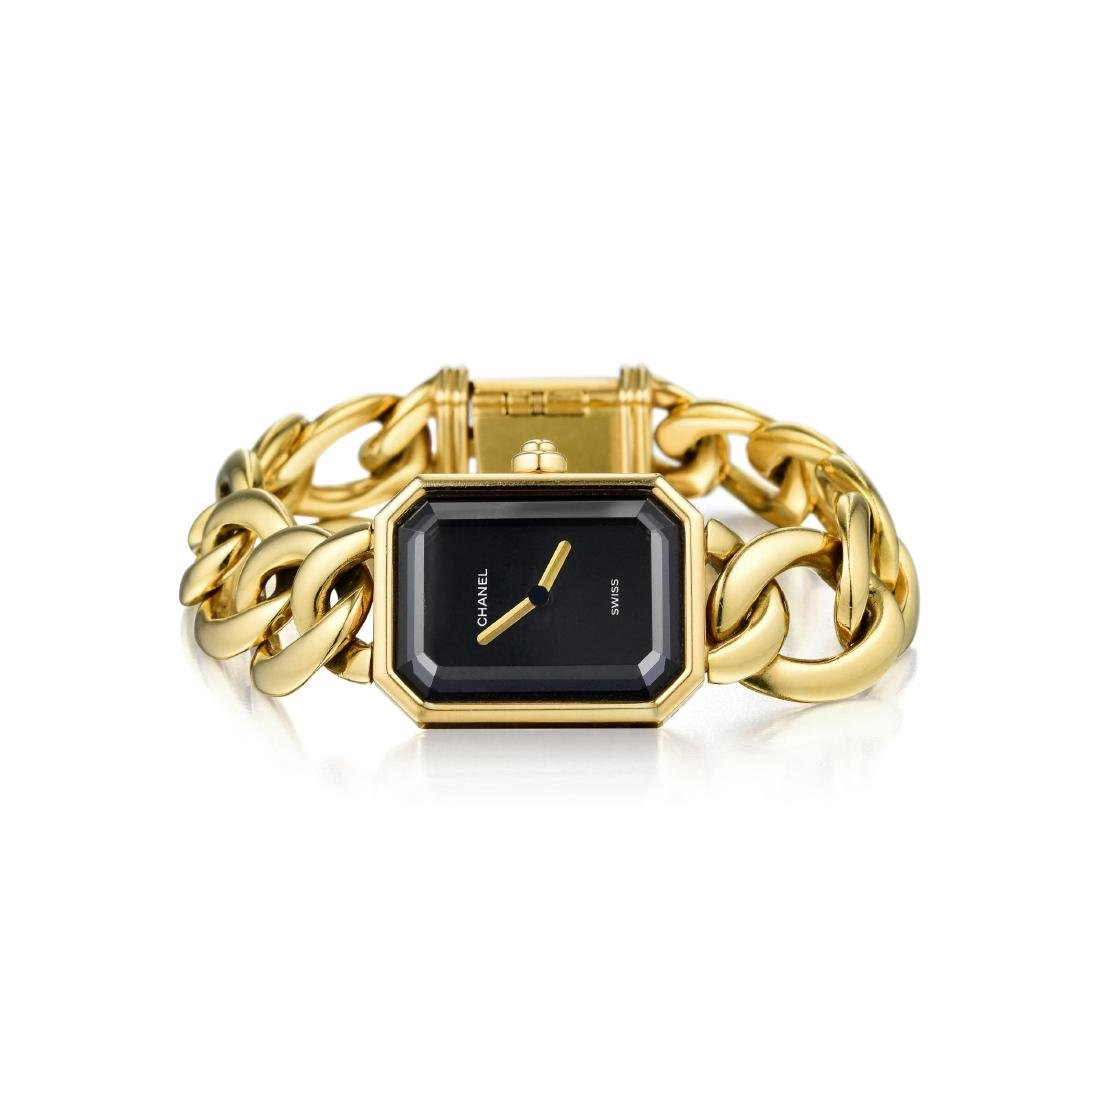 Chanel Premiere Chaine Ladies Watch